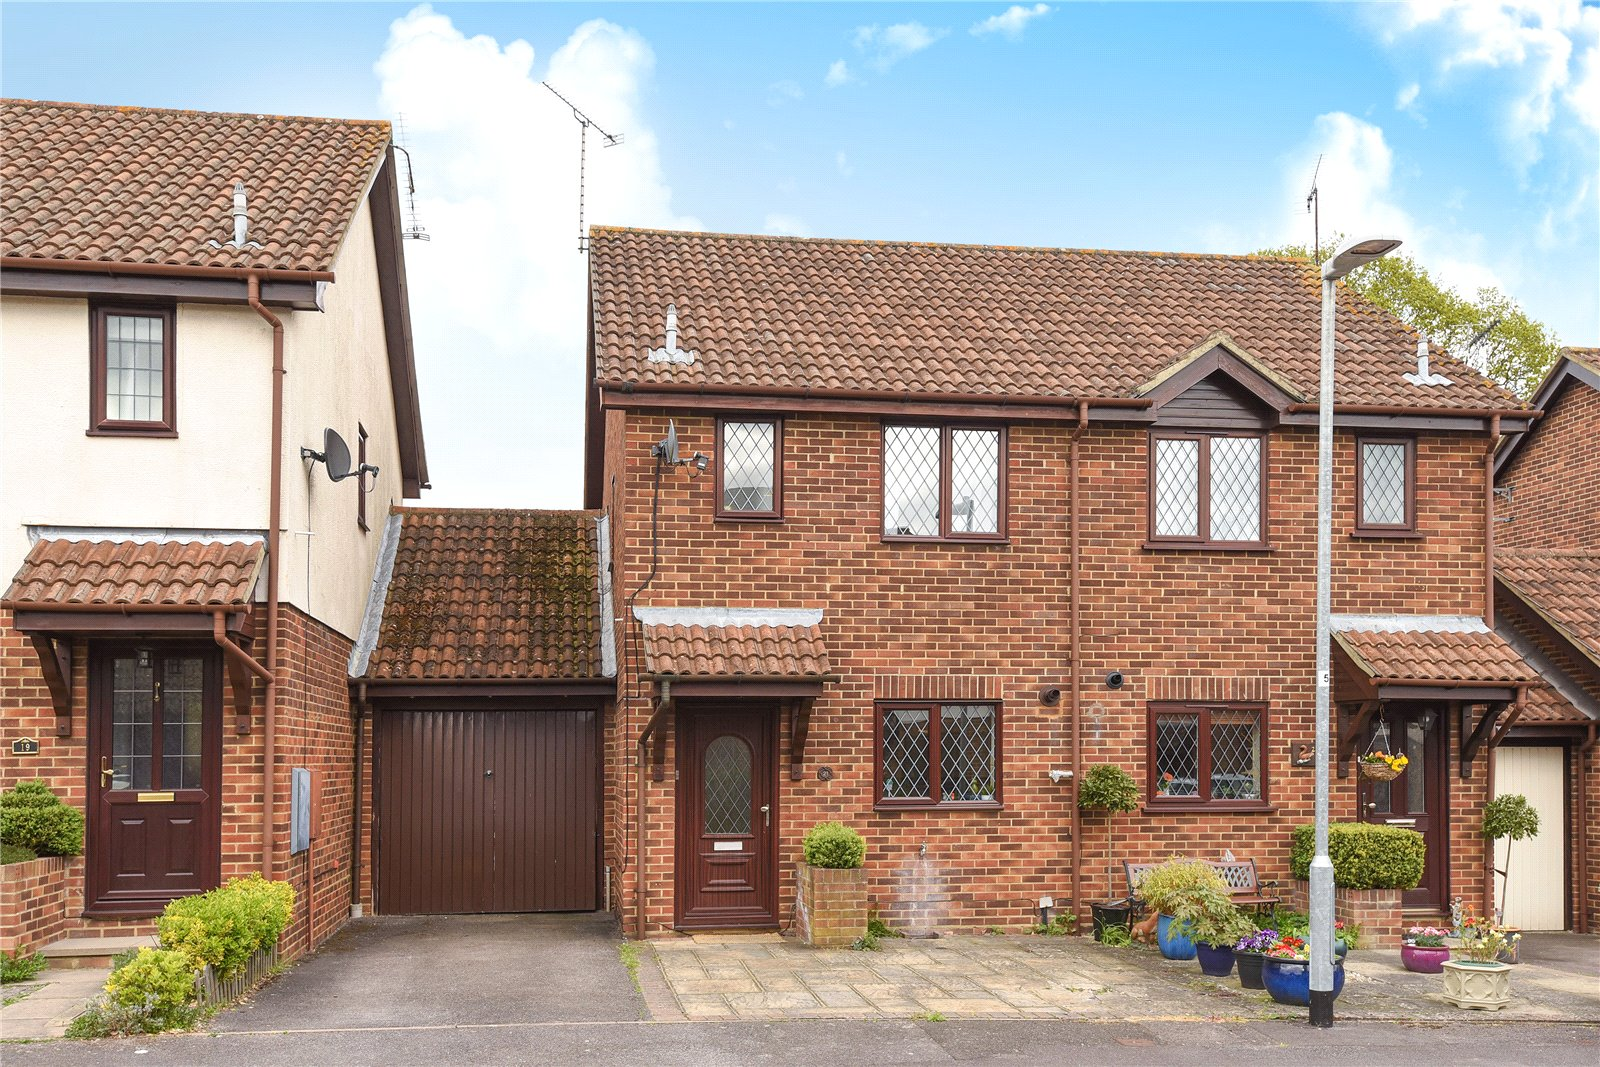 2 Bedrooms Semi Detached House for sale in Wantage Road, College Town, Sandhurst, Berkshire, GU47